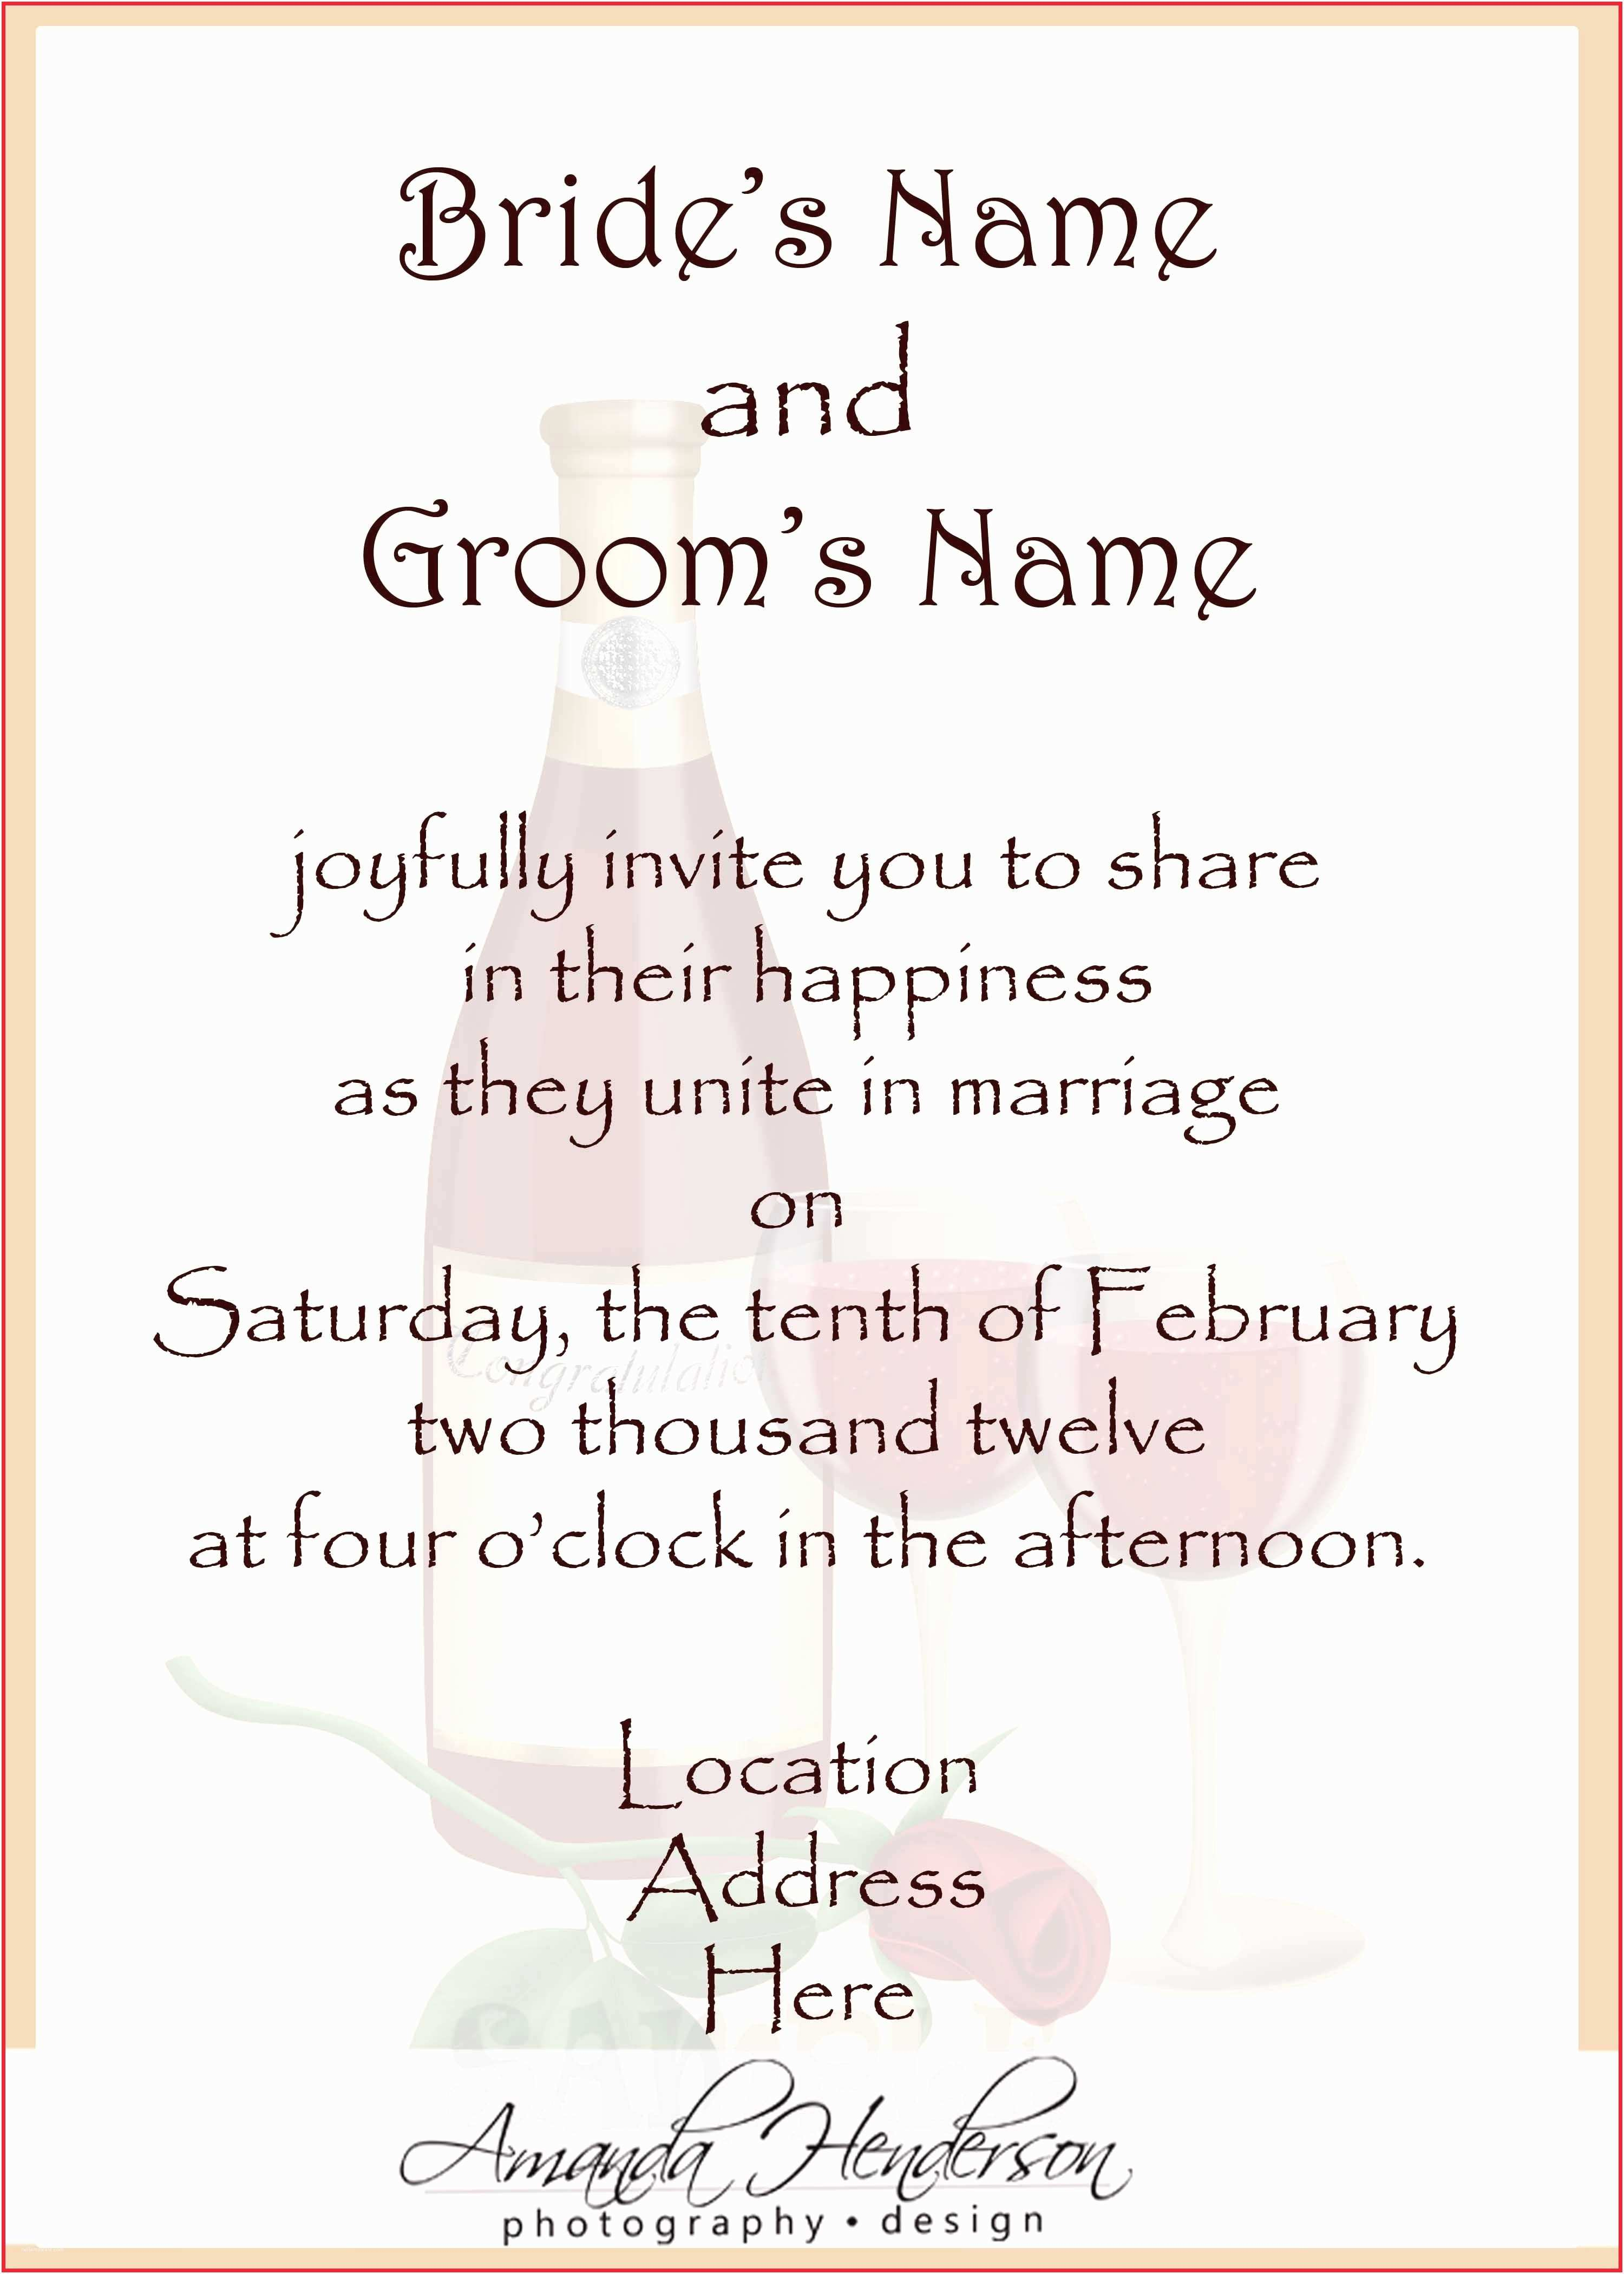 Wedding Invitation Wording Bride and Groom Hosting Wedding Invitation Wording From Bride and Groom